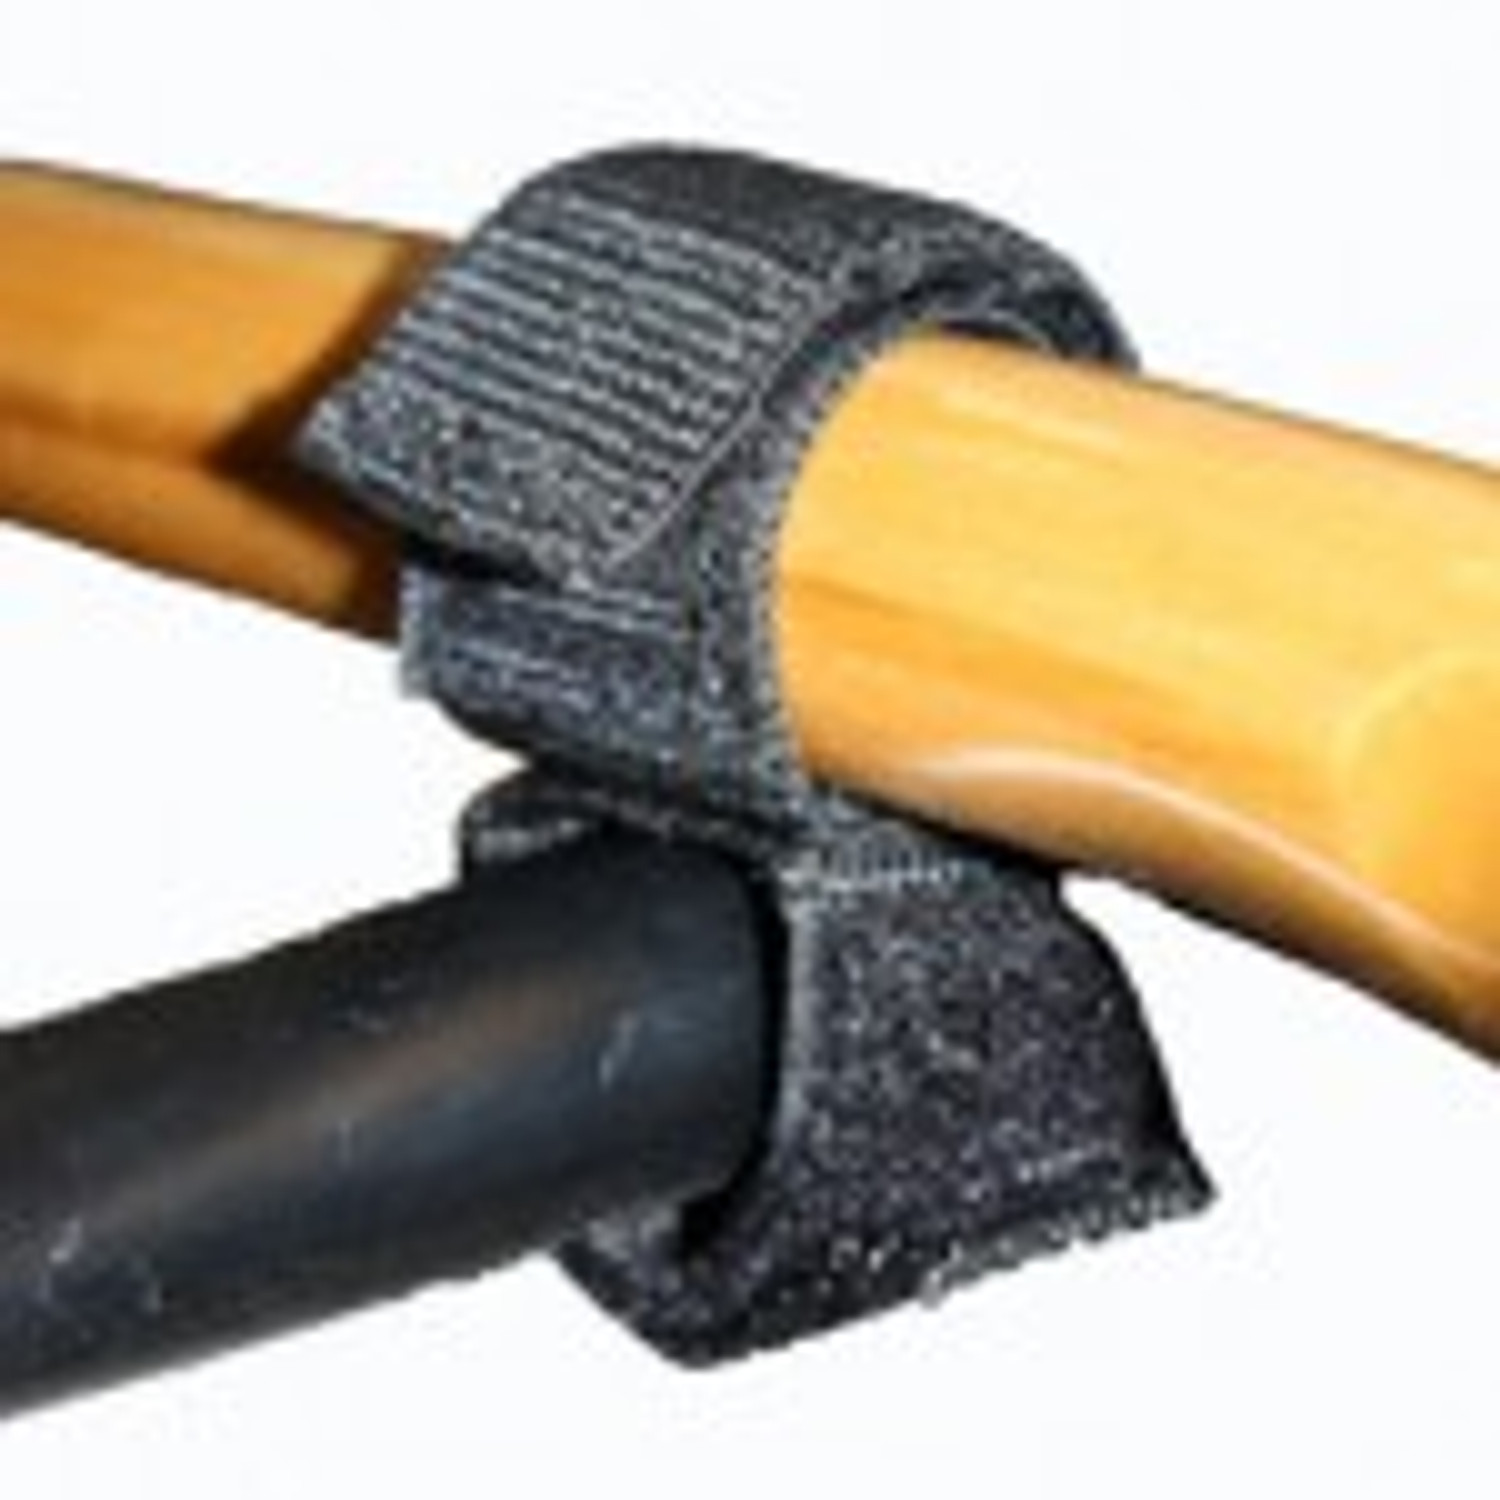 Thwart Smart - Paddle Holder